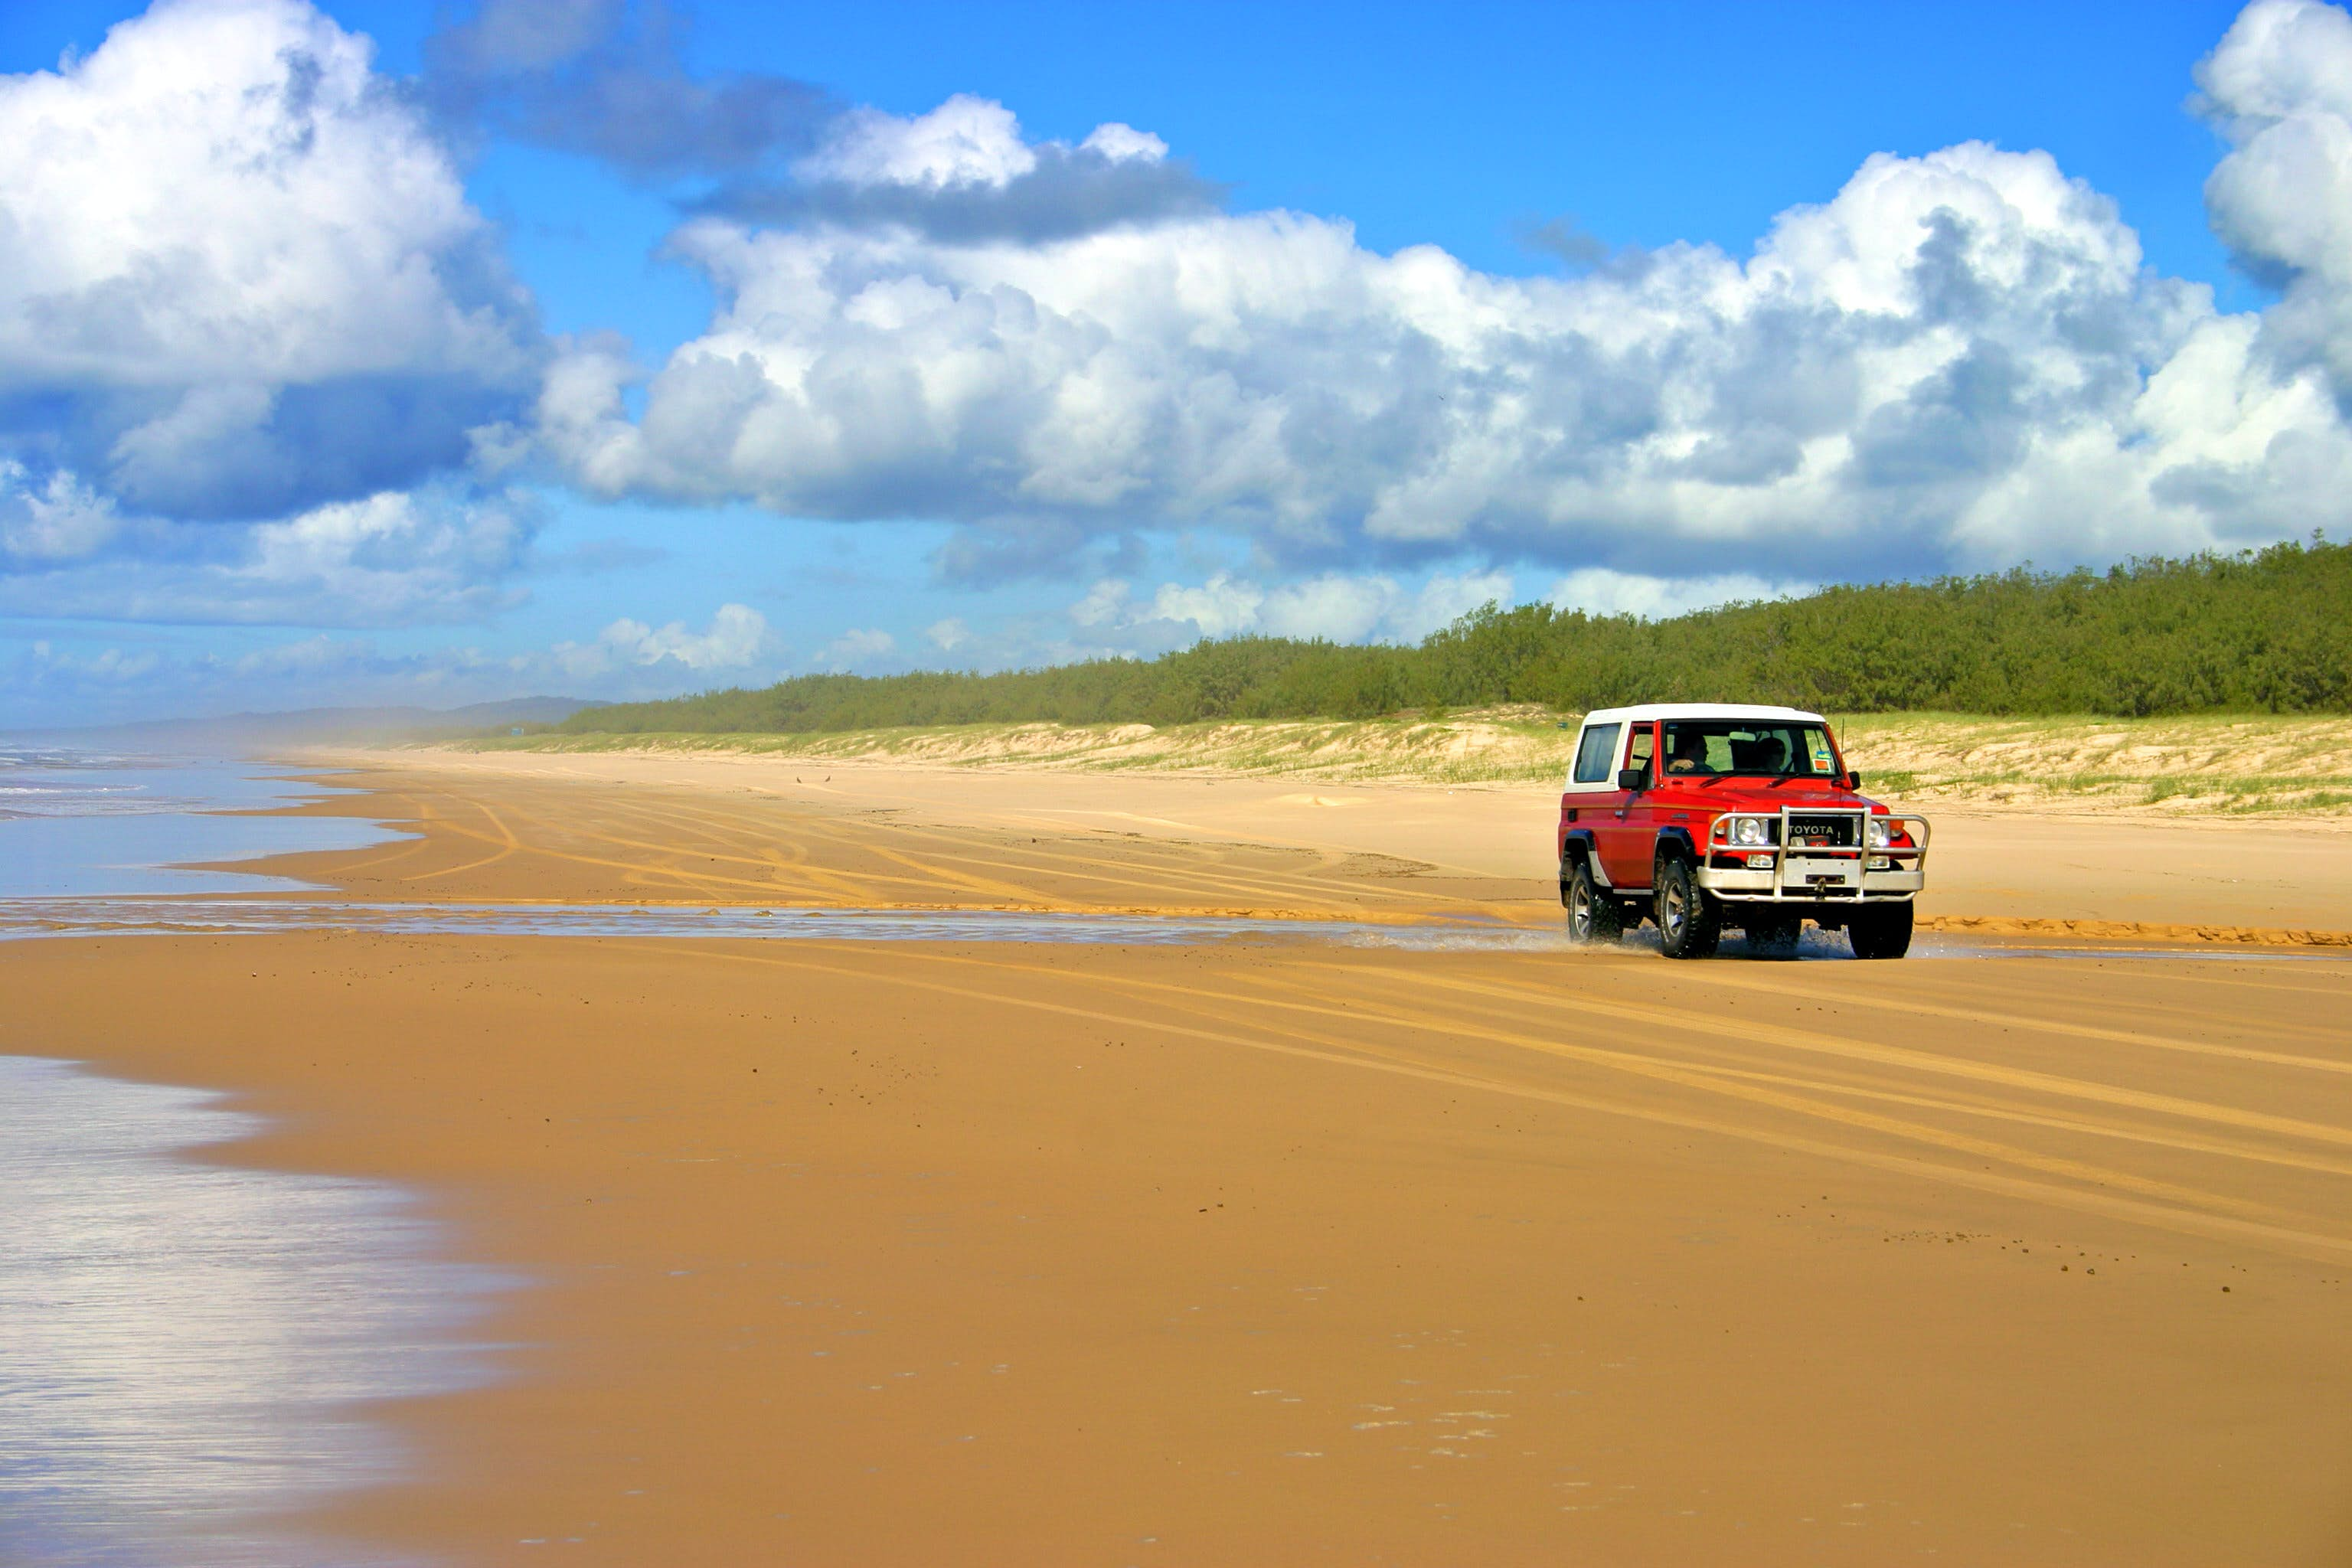 A red truck cruises on the sands on Fraser Island, Australia